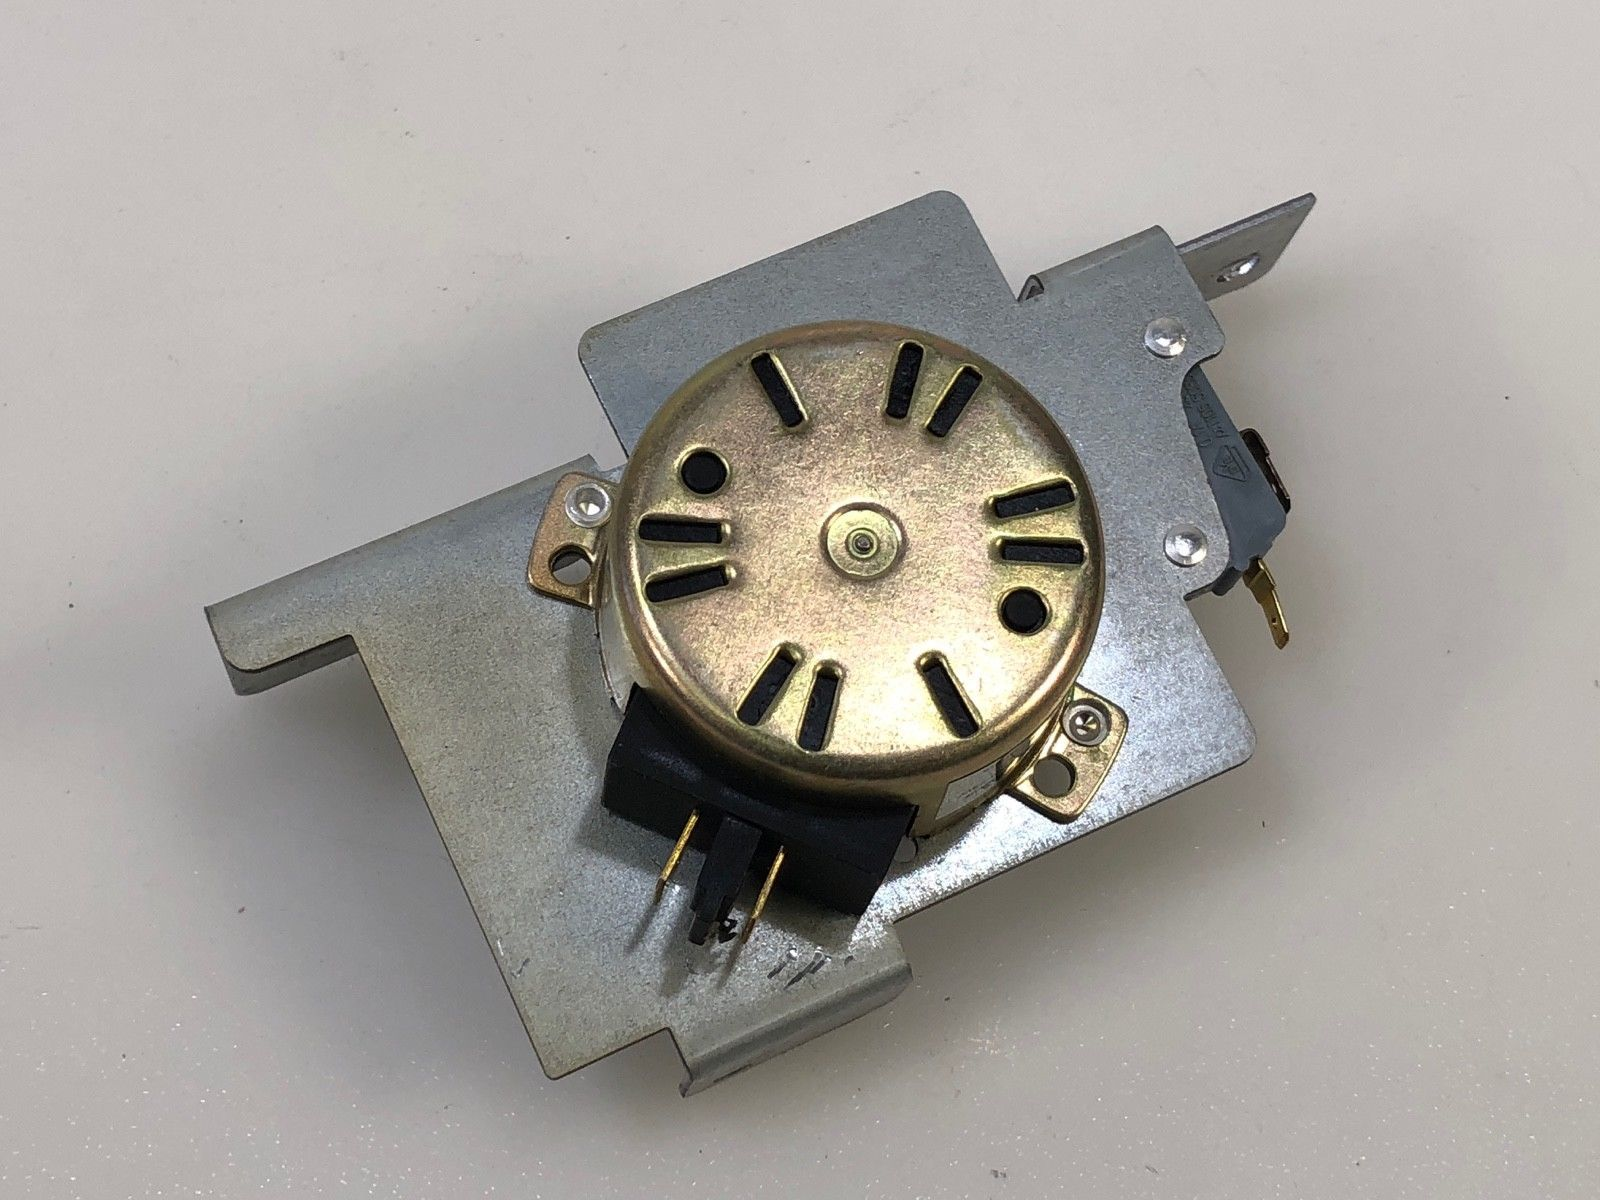 316464300 ELECTROLUX FRIGIDAIRE Range oven door lock motor and switch assembly